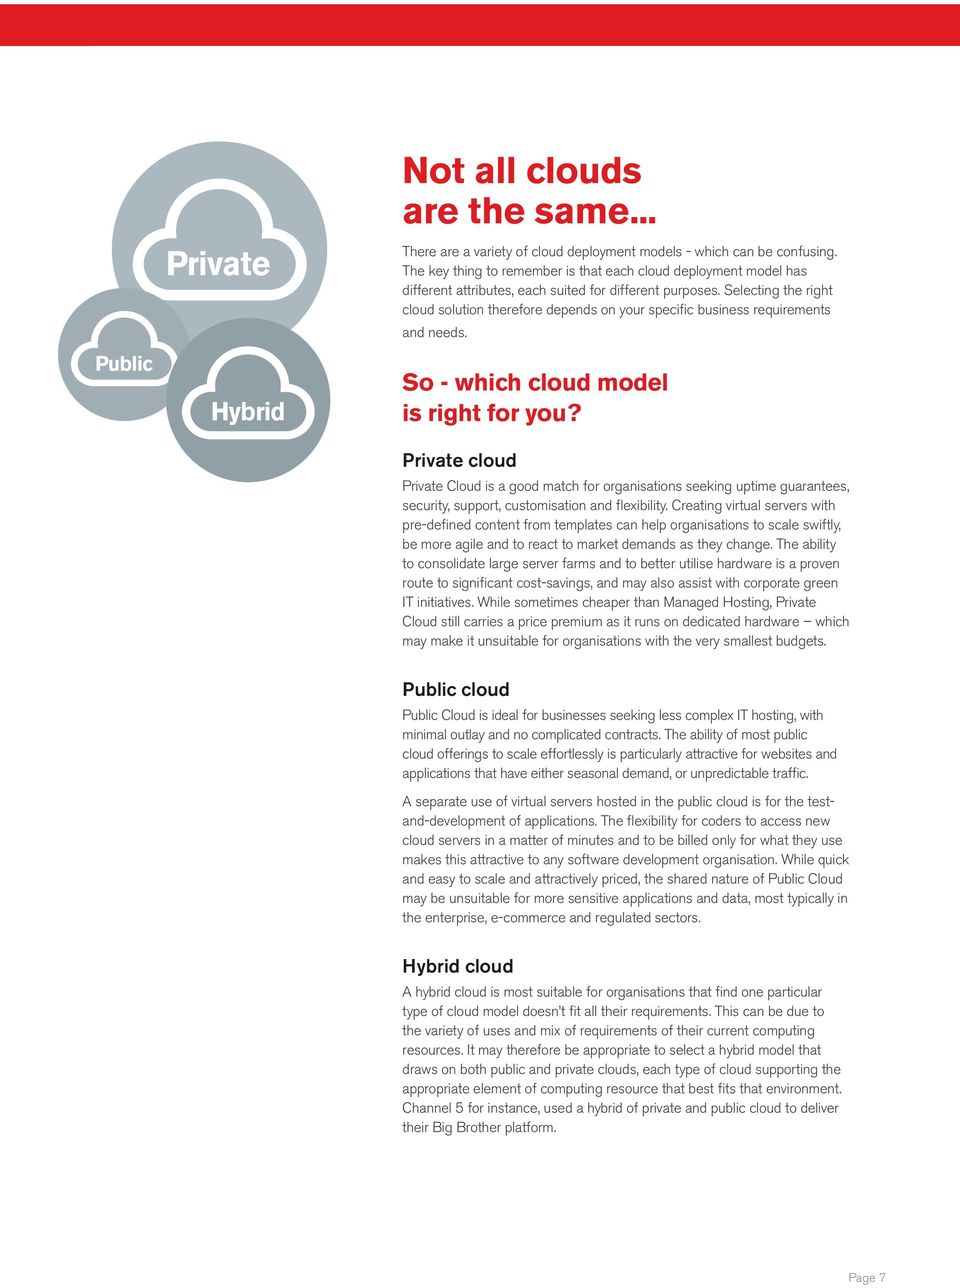 Selecting the right cloud solution therefore depends on your specific business requirements and needs. So - which cloud model is right for you?